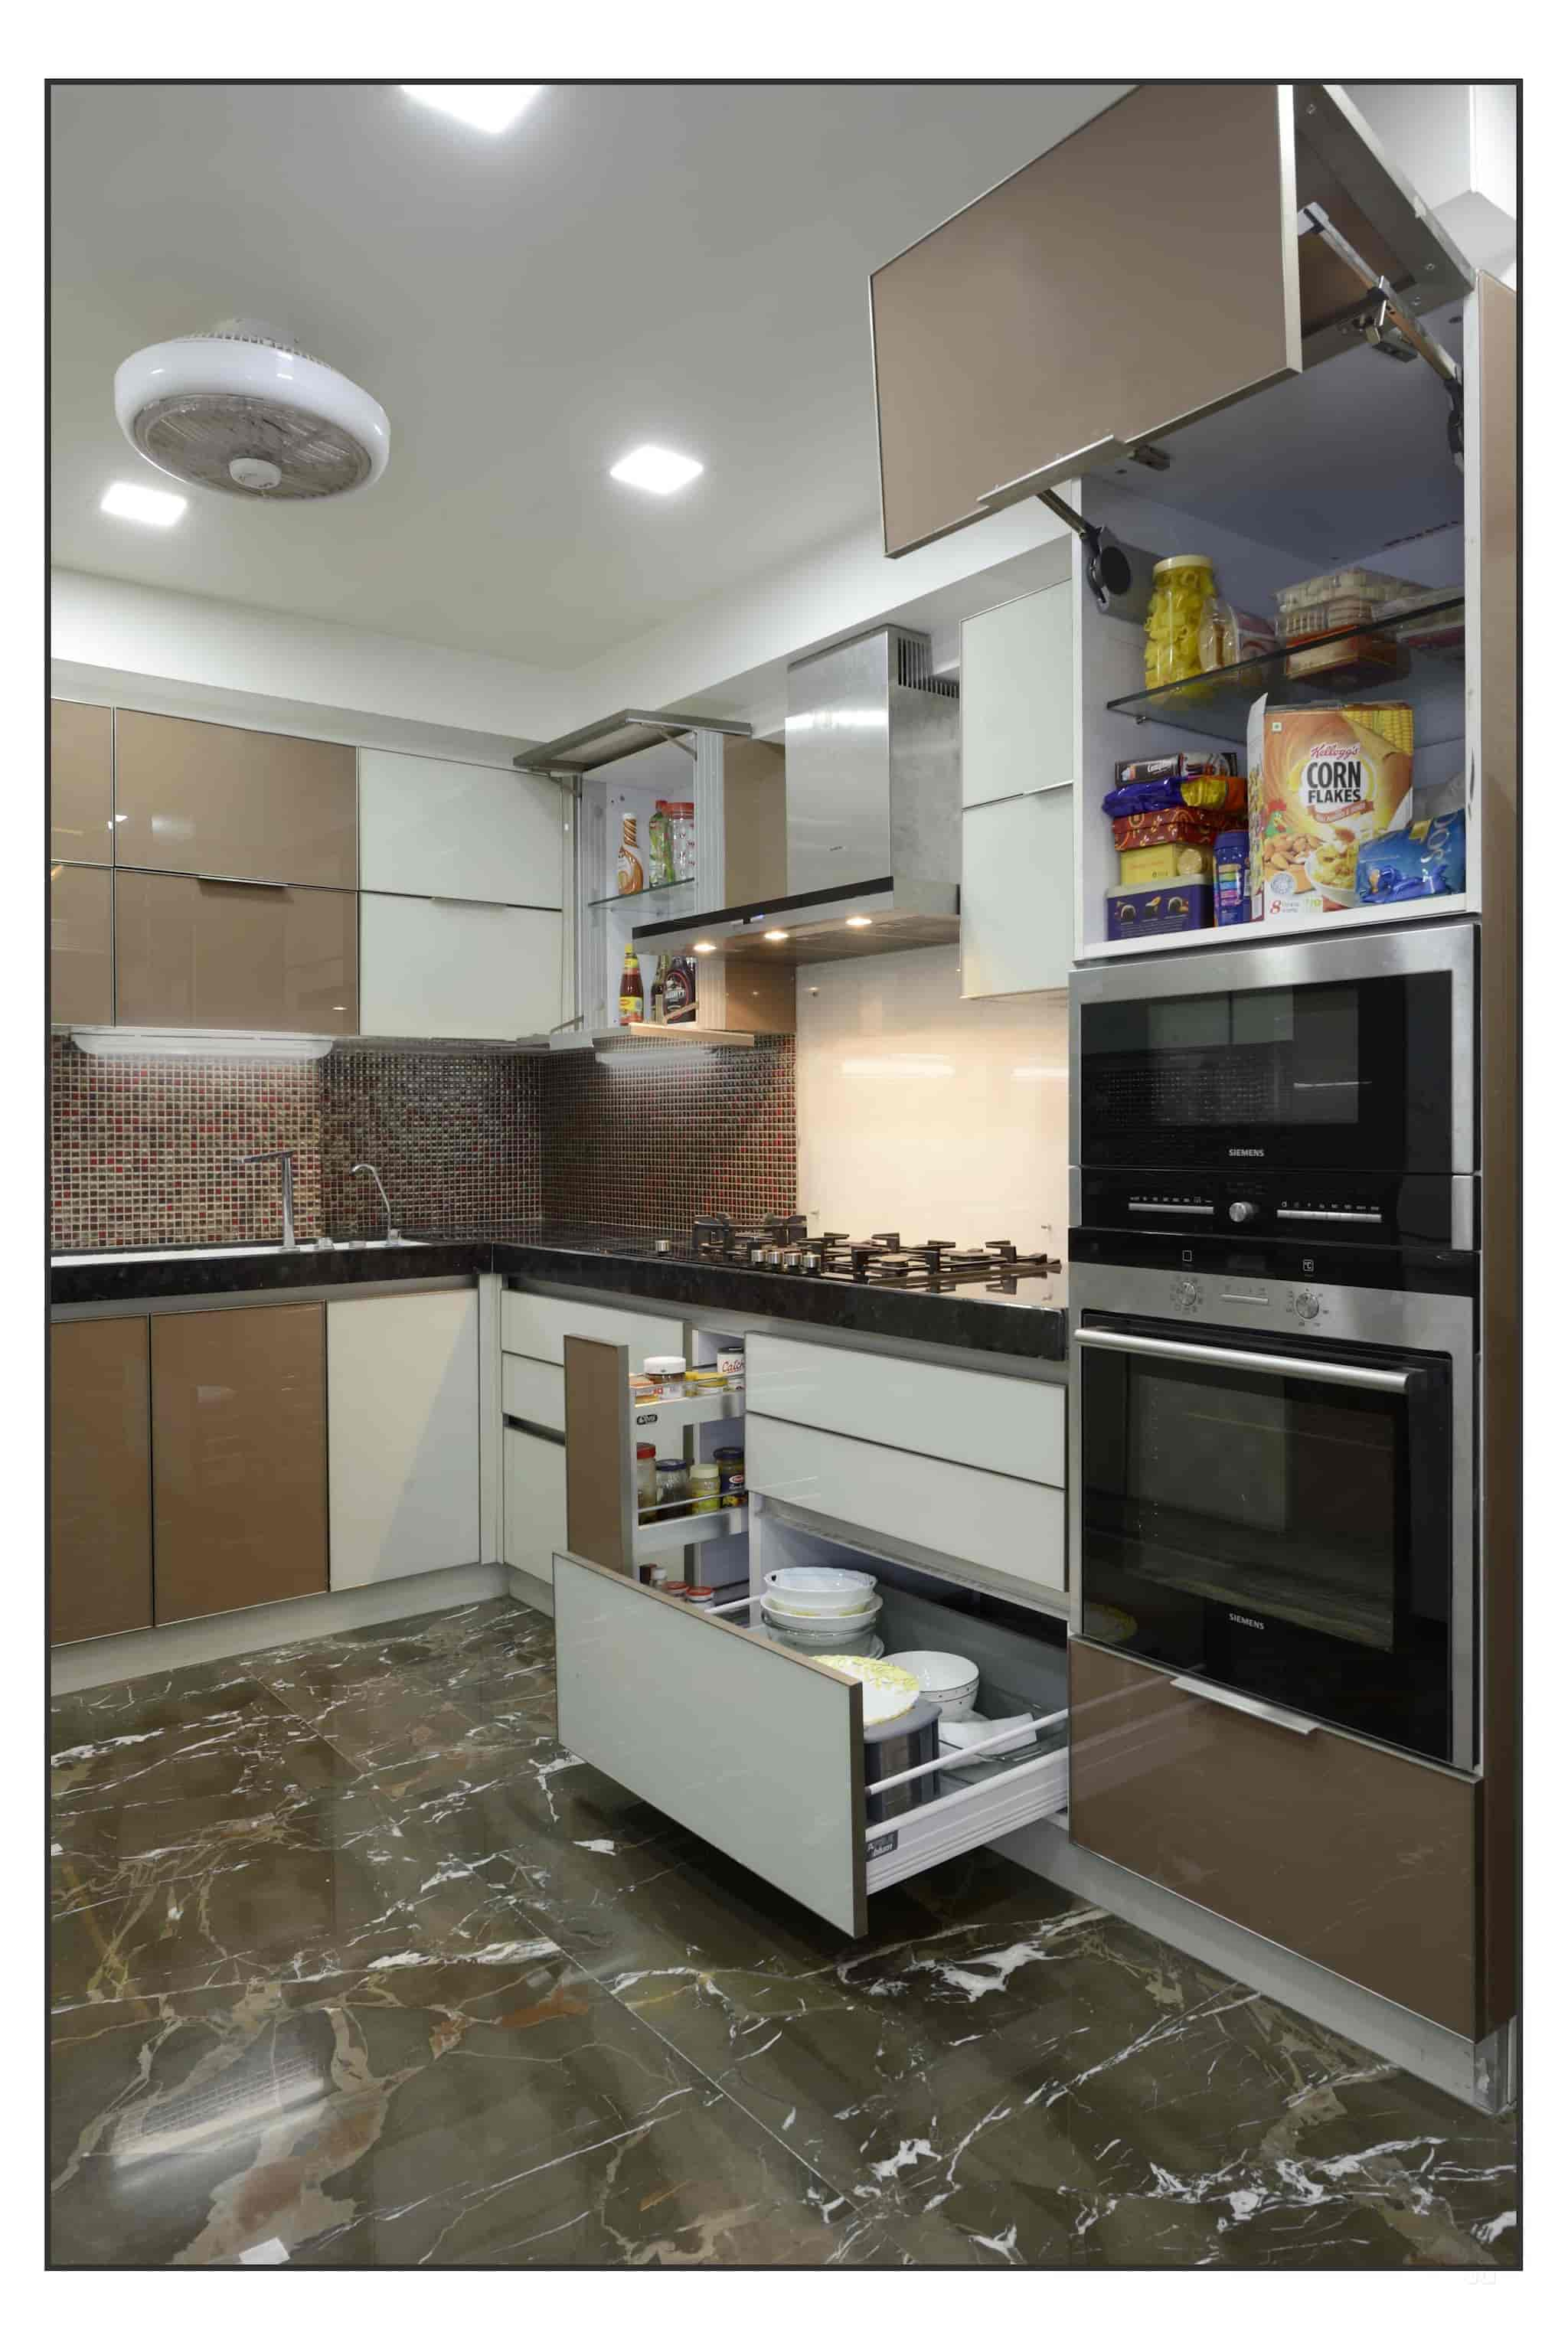 Al Husain Decor & Kitchen, Kedari Nagar-Wanowrie - Interior